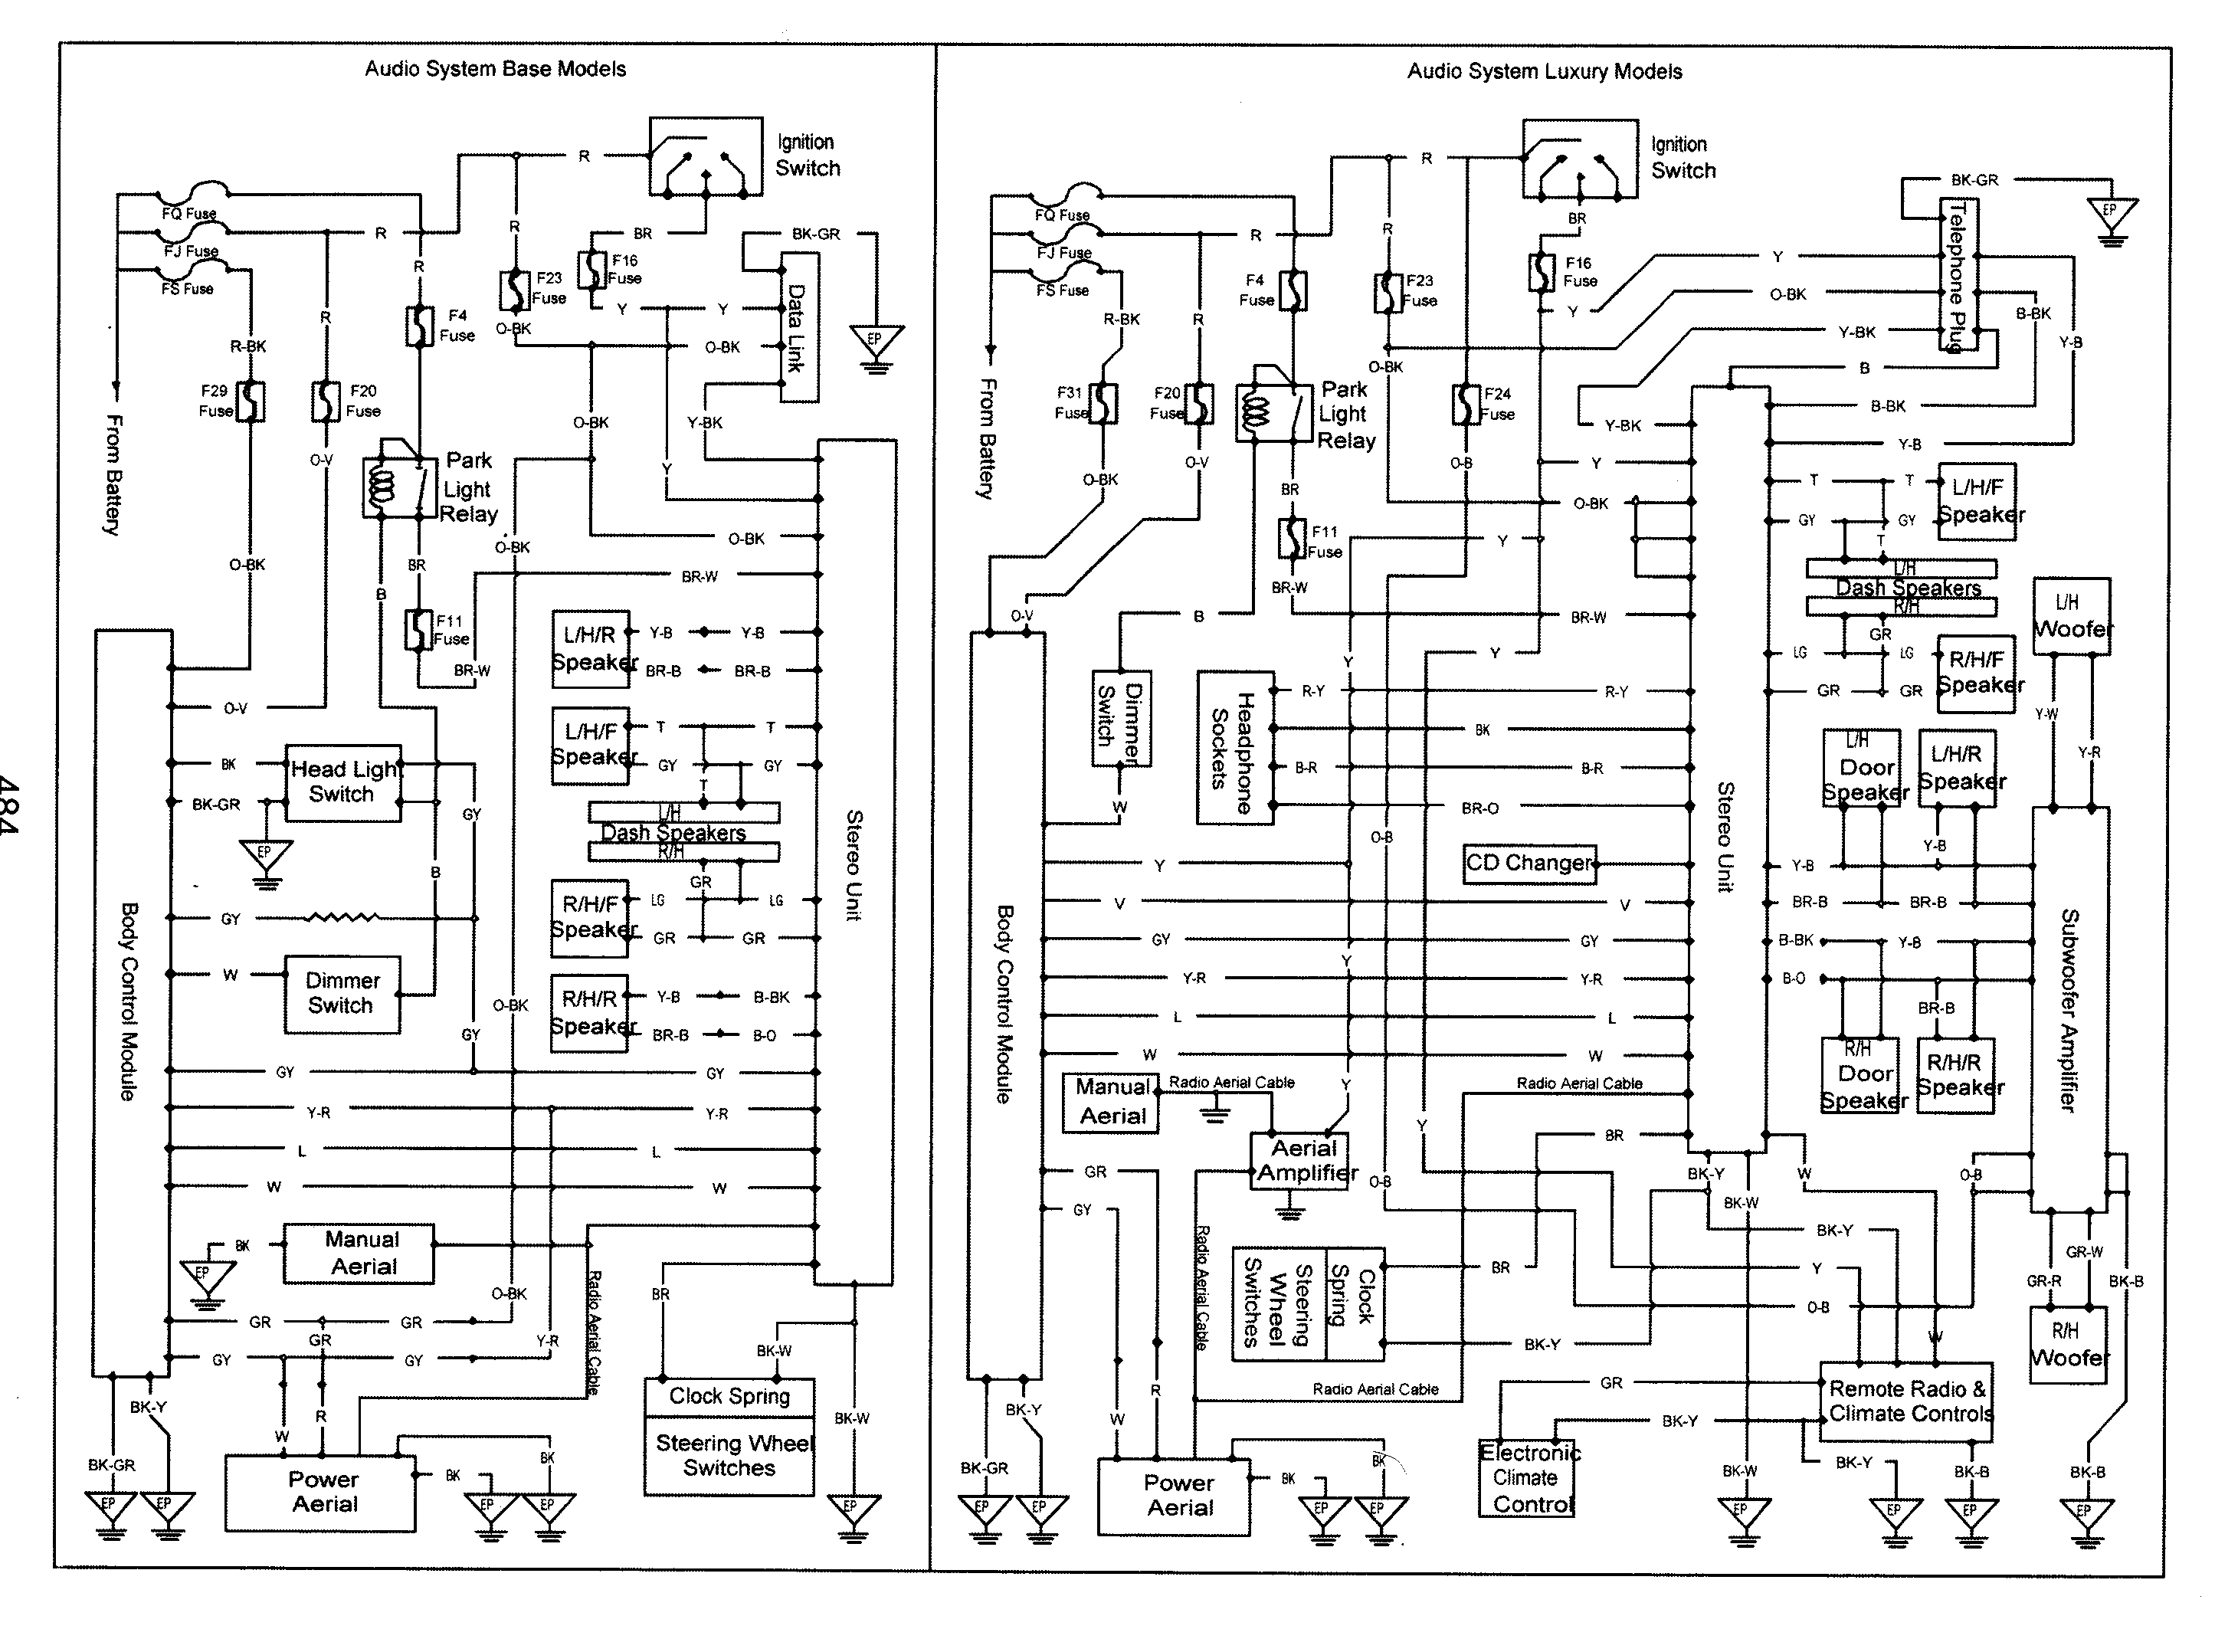 IMG_009?resize=665%2C496 lx torana tacho wiring diagram the best wiring diagram 2017 lx torana wiring diagram at honlapkeszites.co